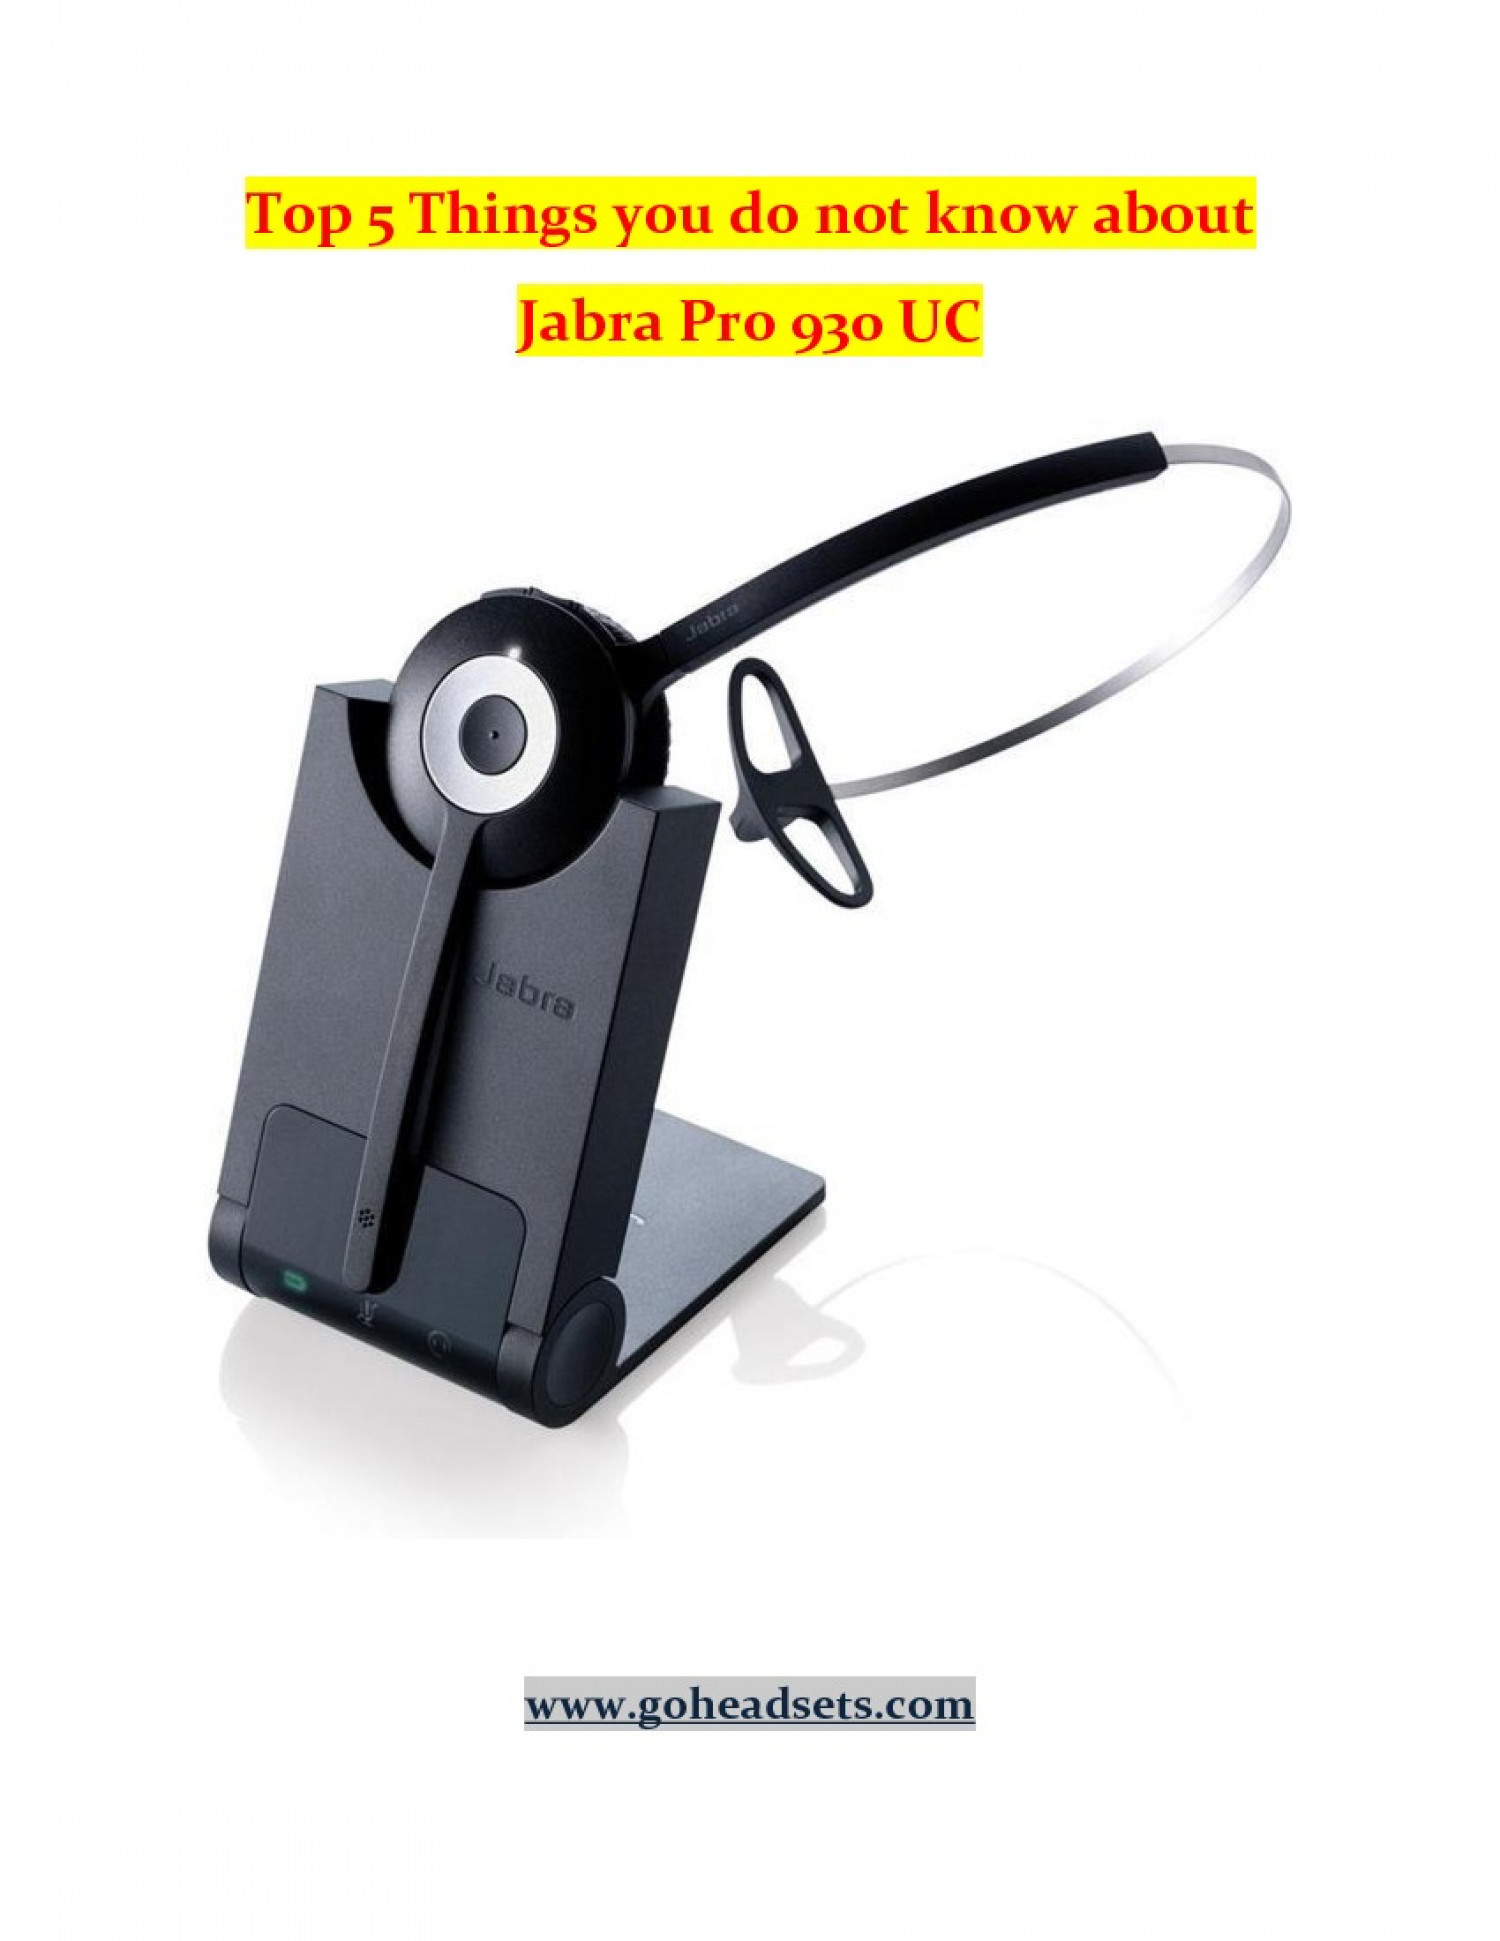 Things You Don't Know About Jabra Pro 930 USB MONO Headset Infographic